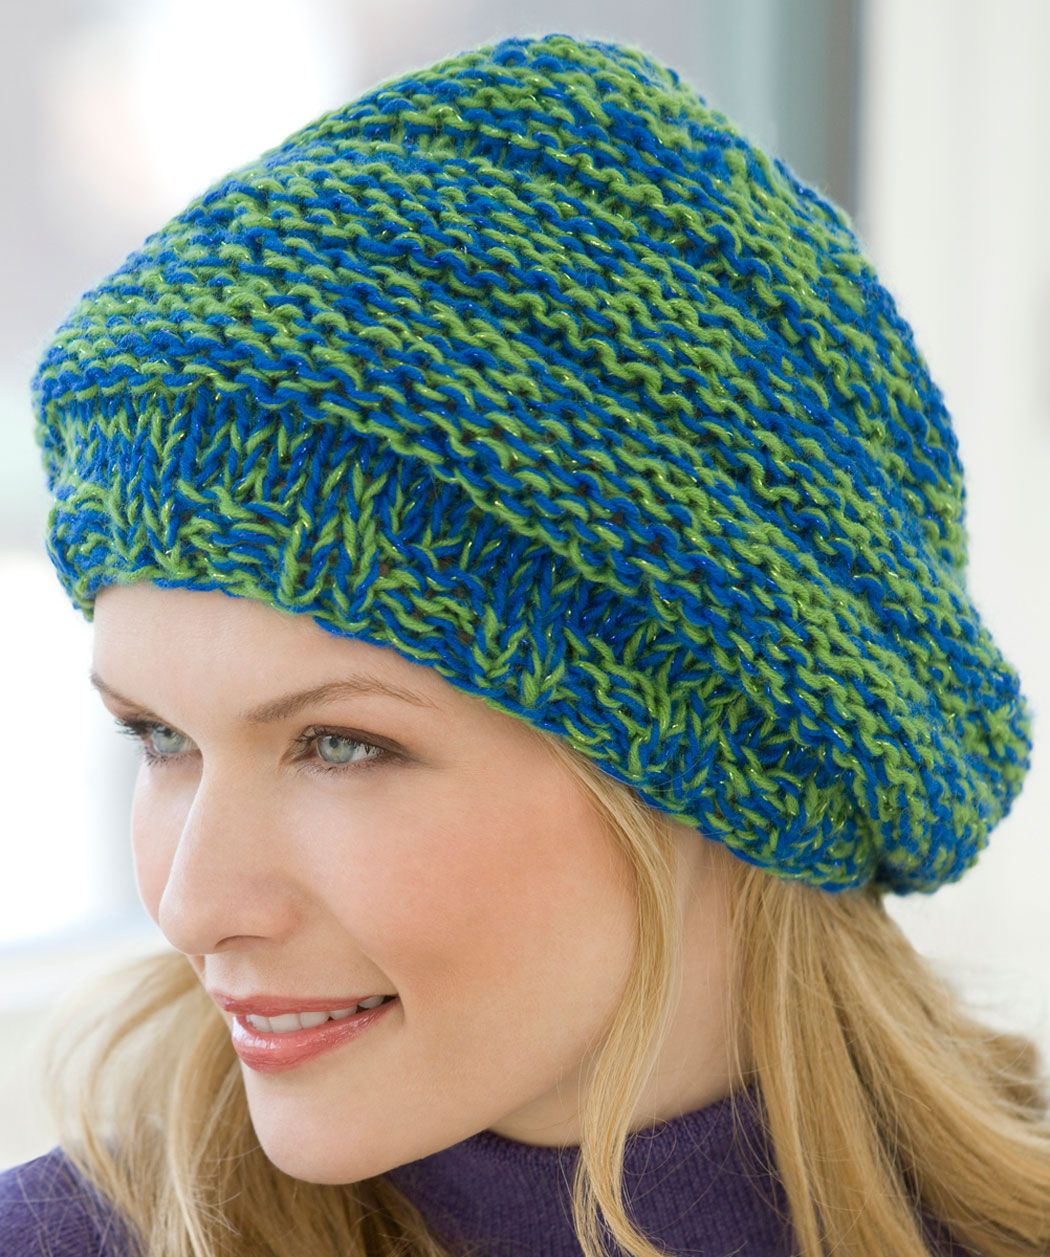 Knit Slouchy Hat: 2 Balls RED HEART® Shimmer®: [US 13], 16\